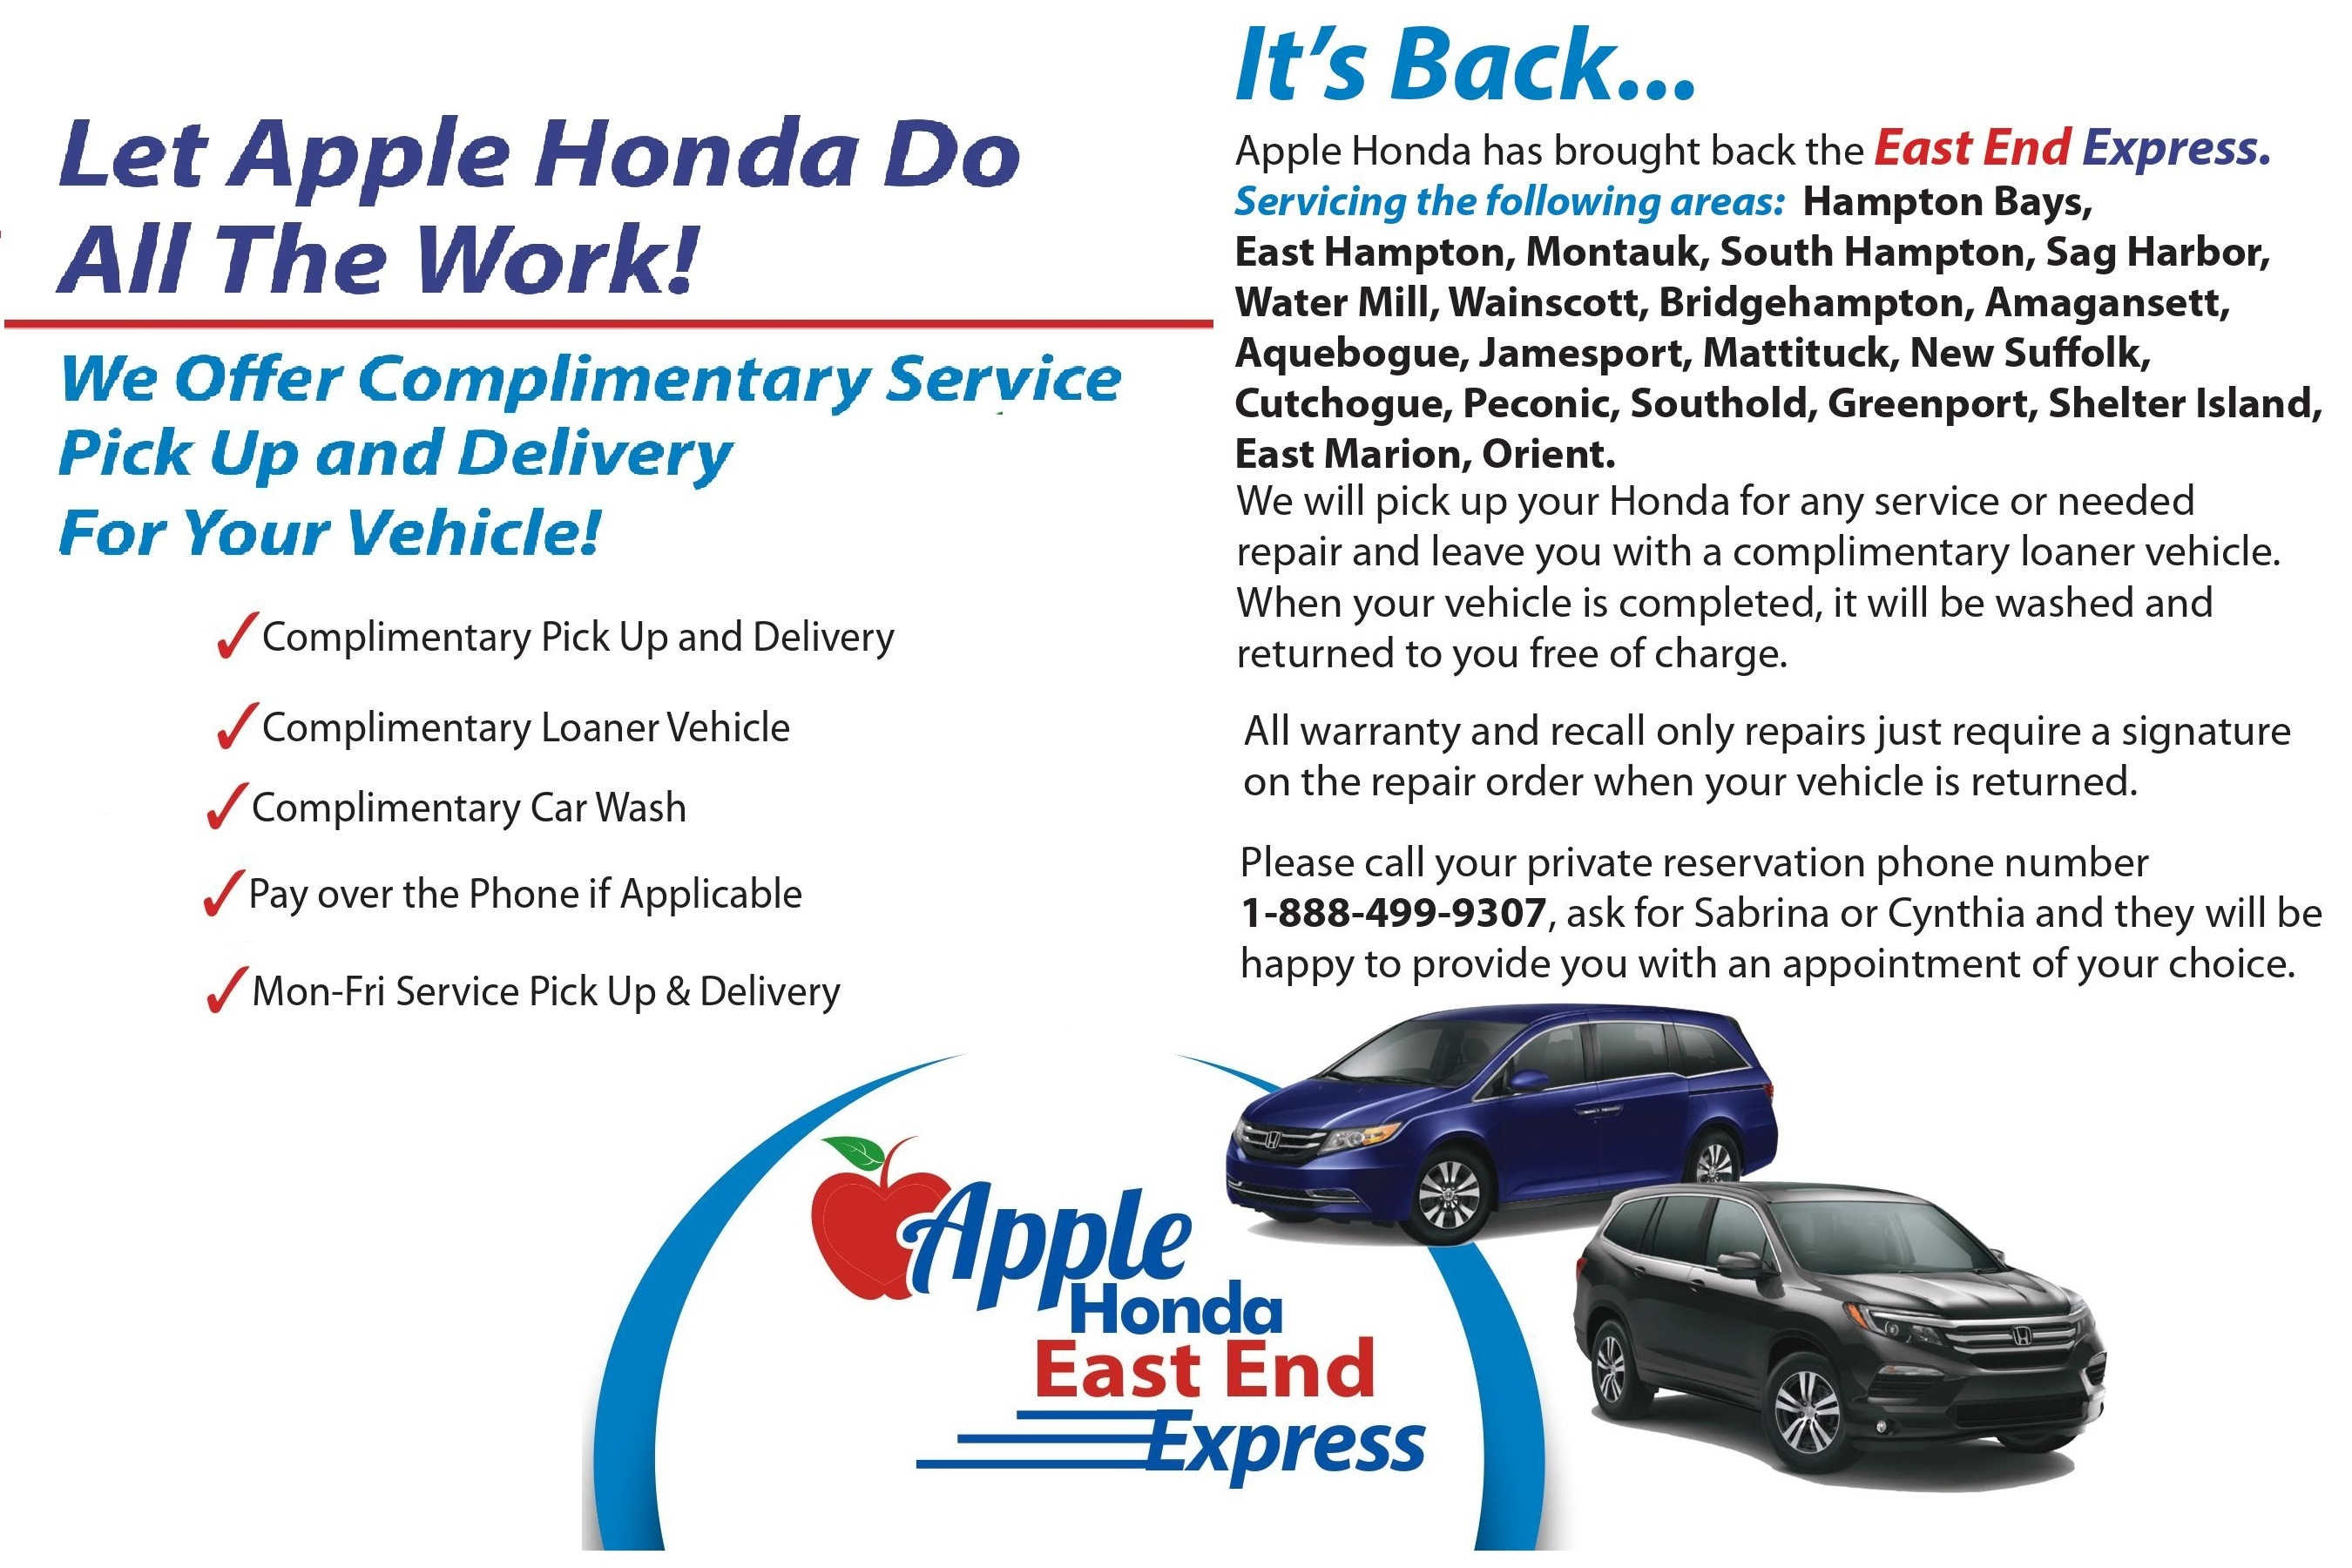 Apple Honda Is Bringing Back The East End Express. If You Live In The  Following Zip Codes You Will Enjoy All The Benefits Of Full Valet Service.